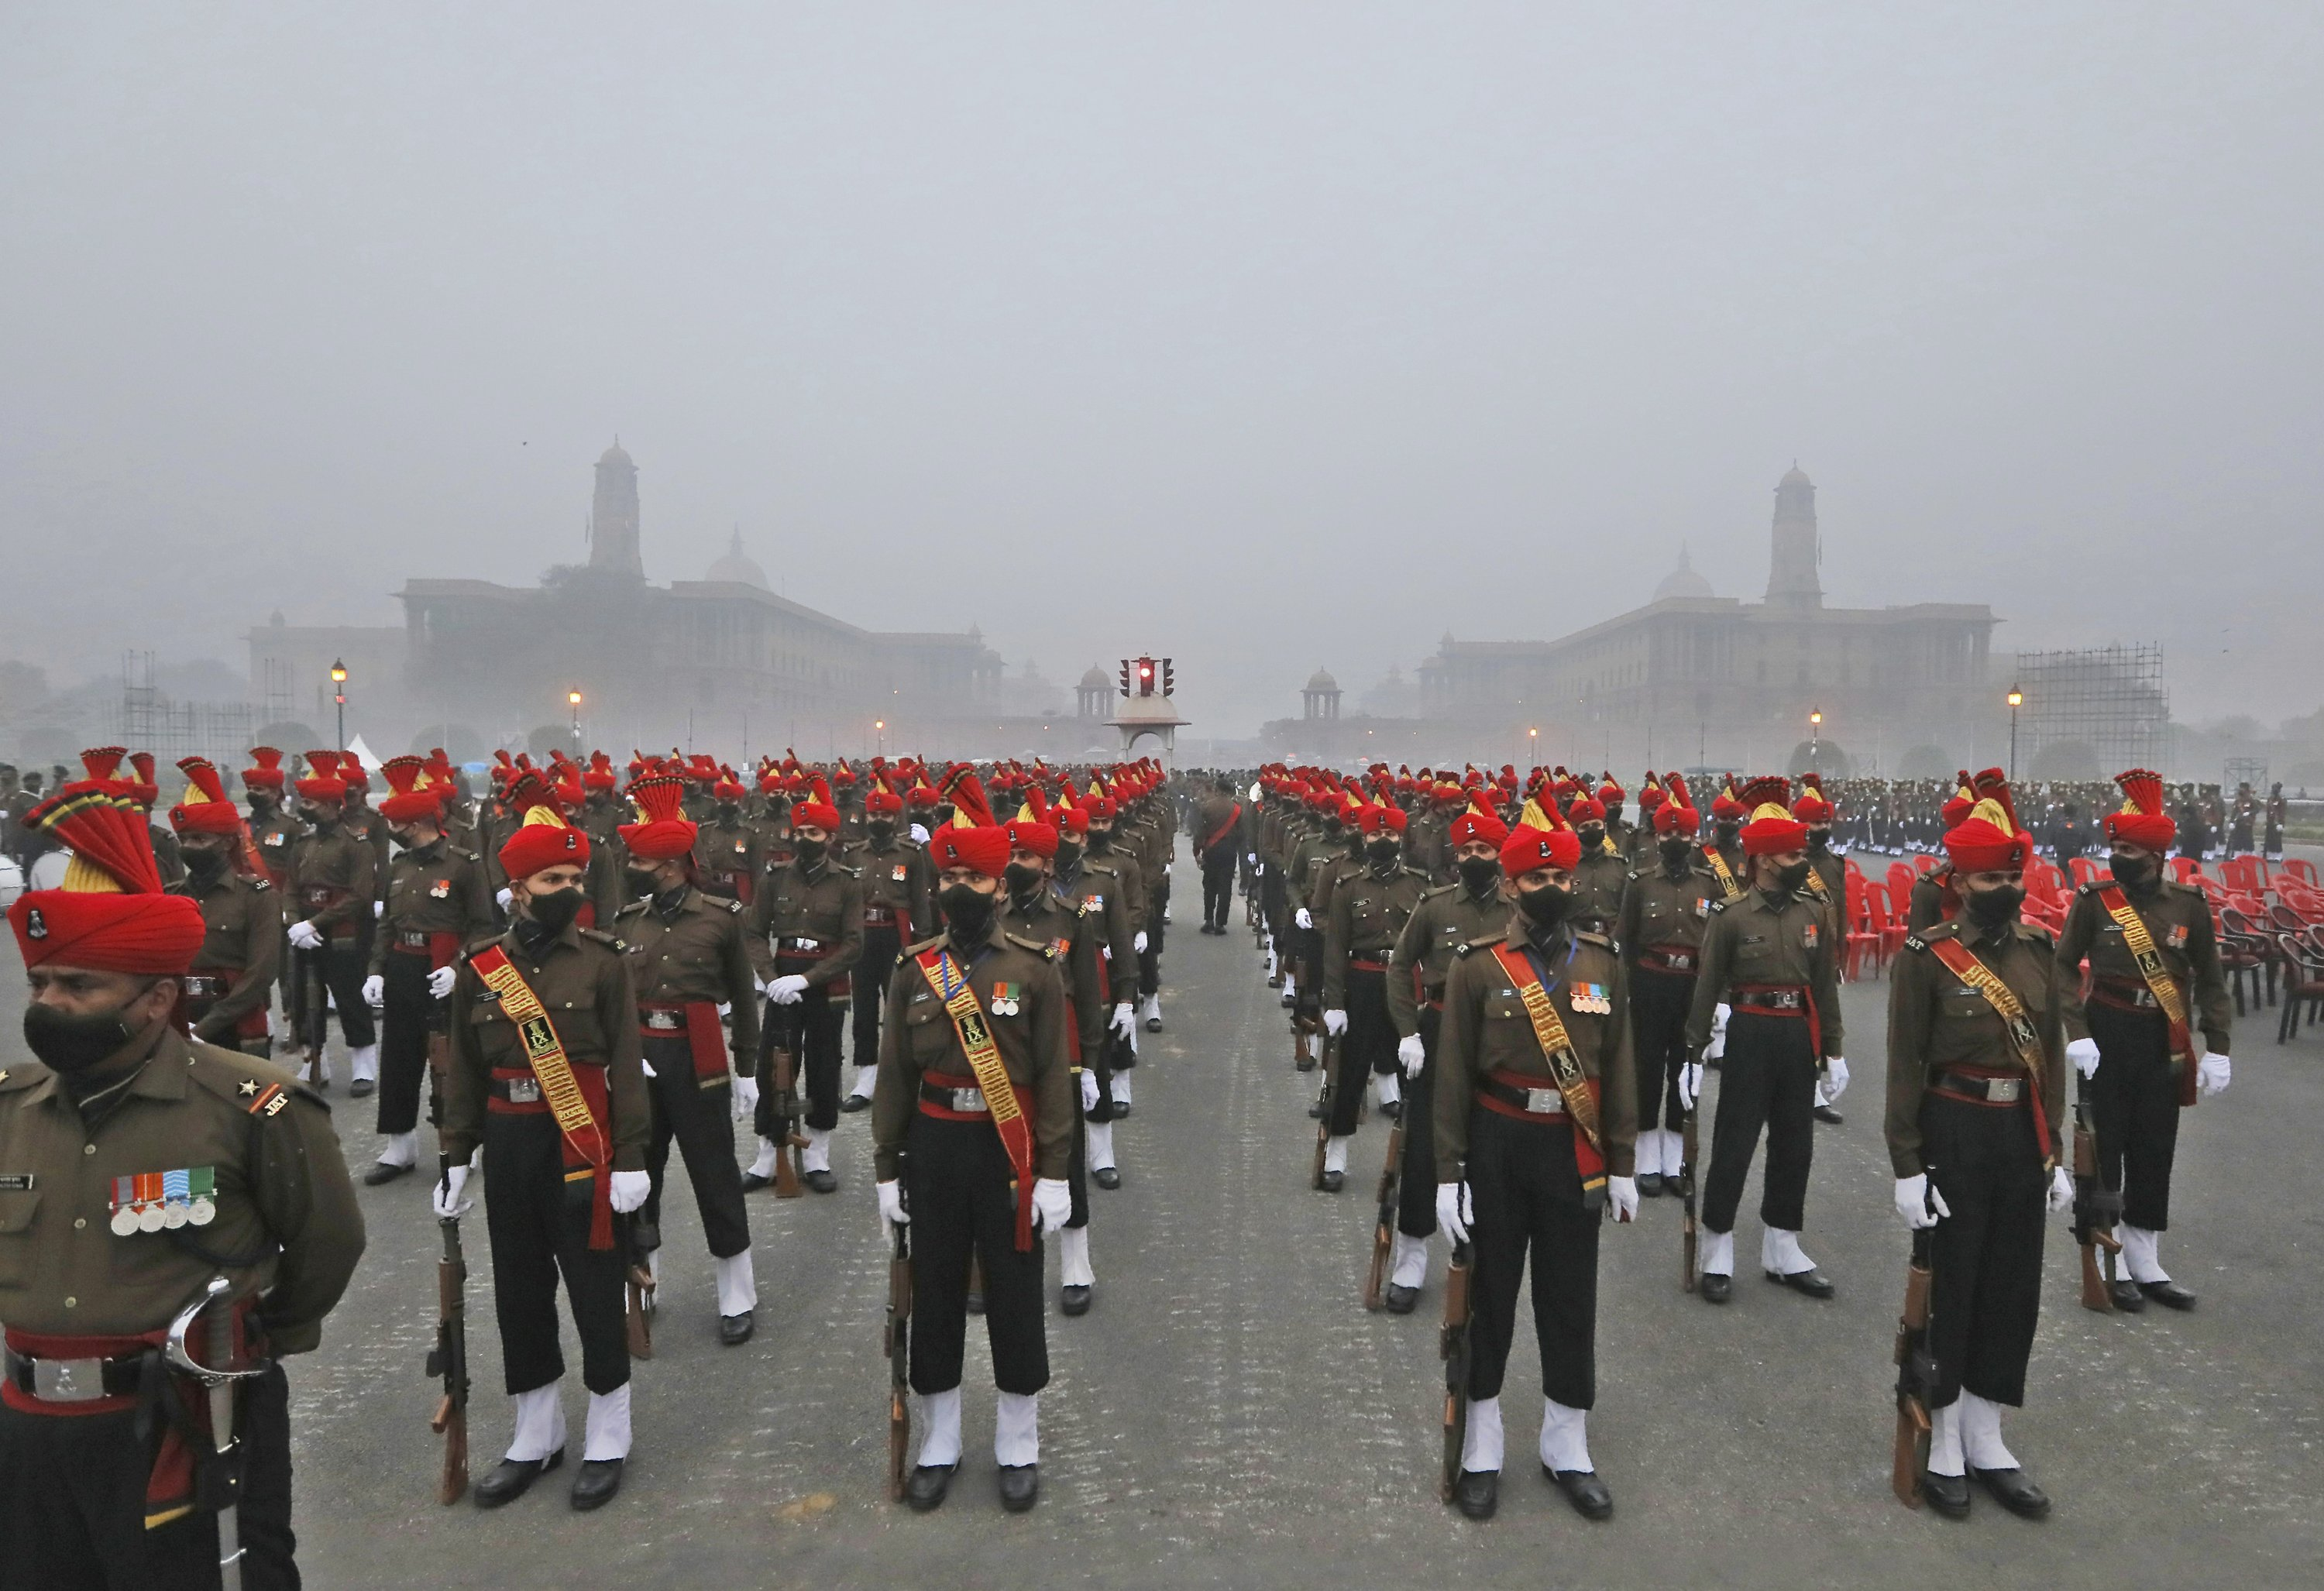 AP PHOTOS: Marchers rehearse for India's Republic Day parade